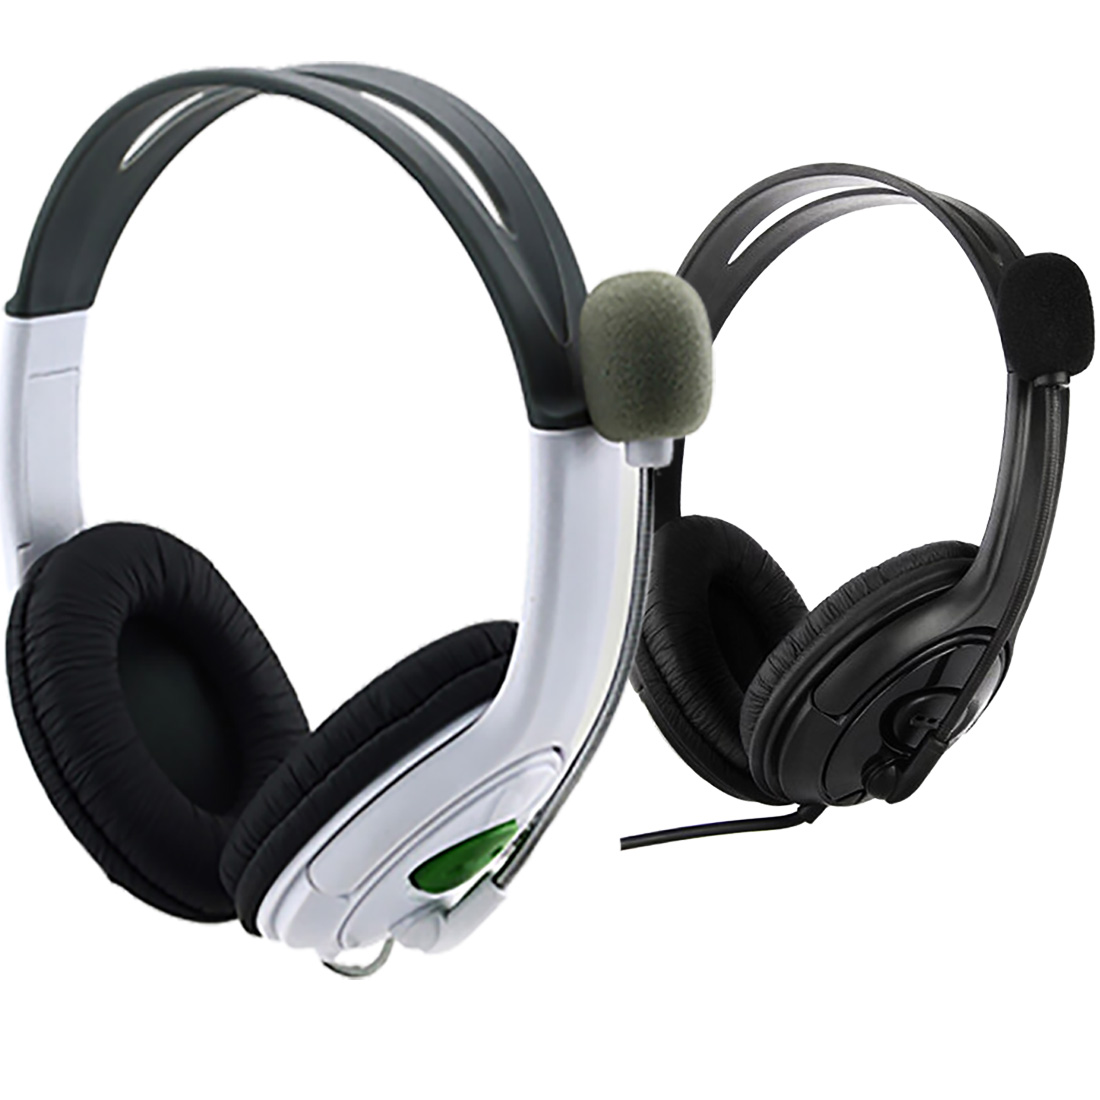 Hot Sale PC Gamer Over-ear Game Gaming Headphone Headset usb dual Earphone Headband with Mic Stereo Bass for ps3 pc насос gidroforce atqb60